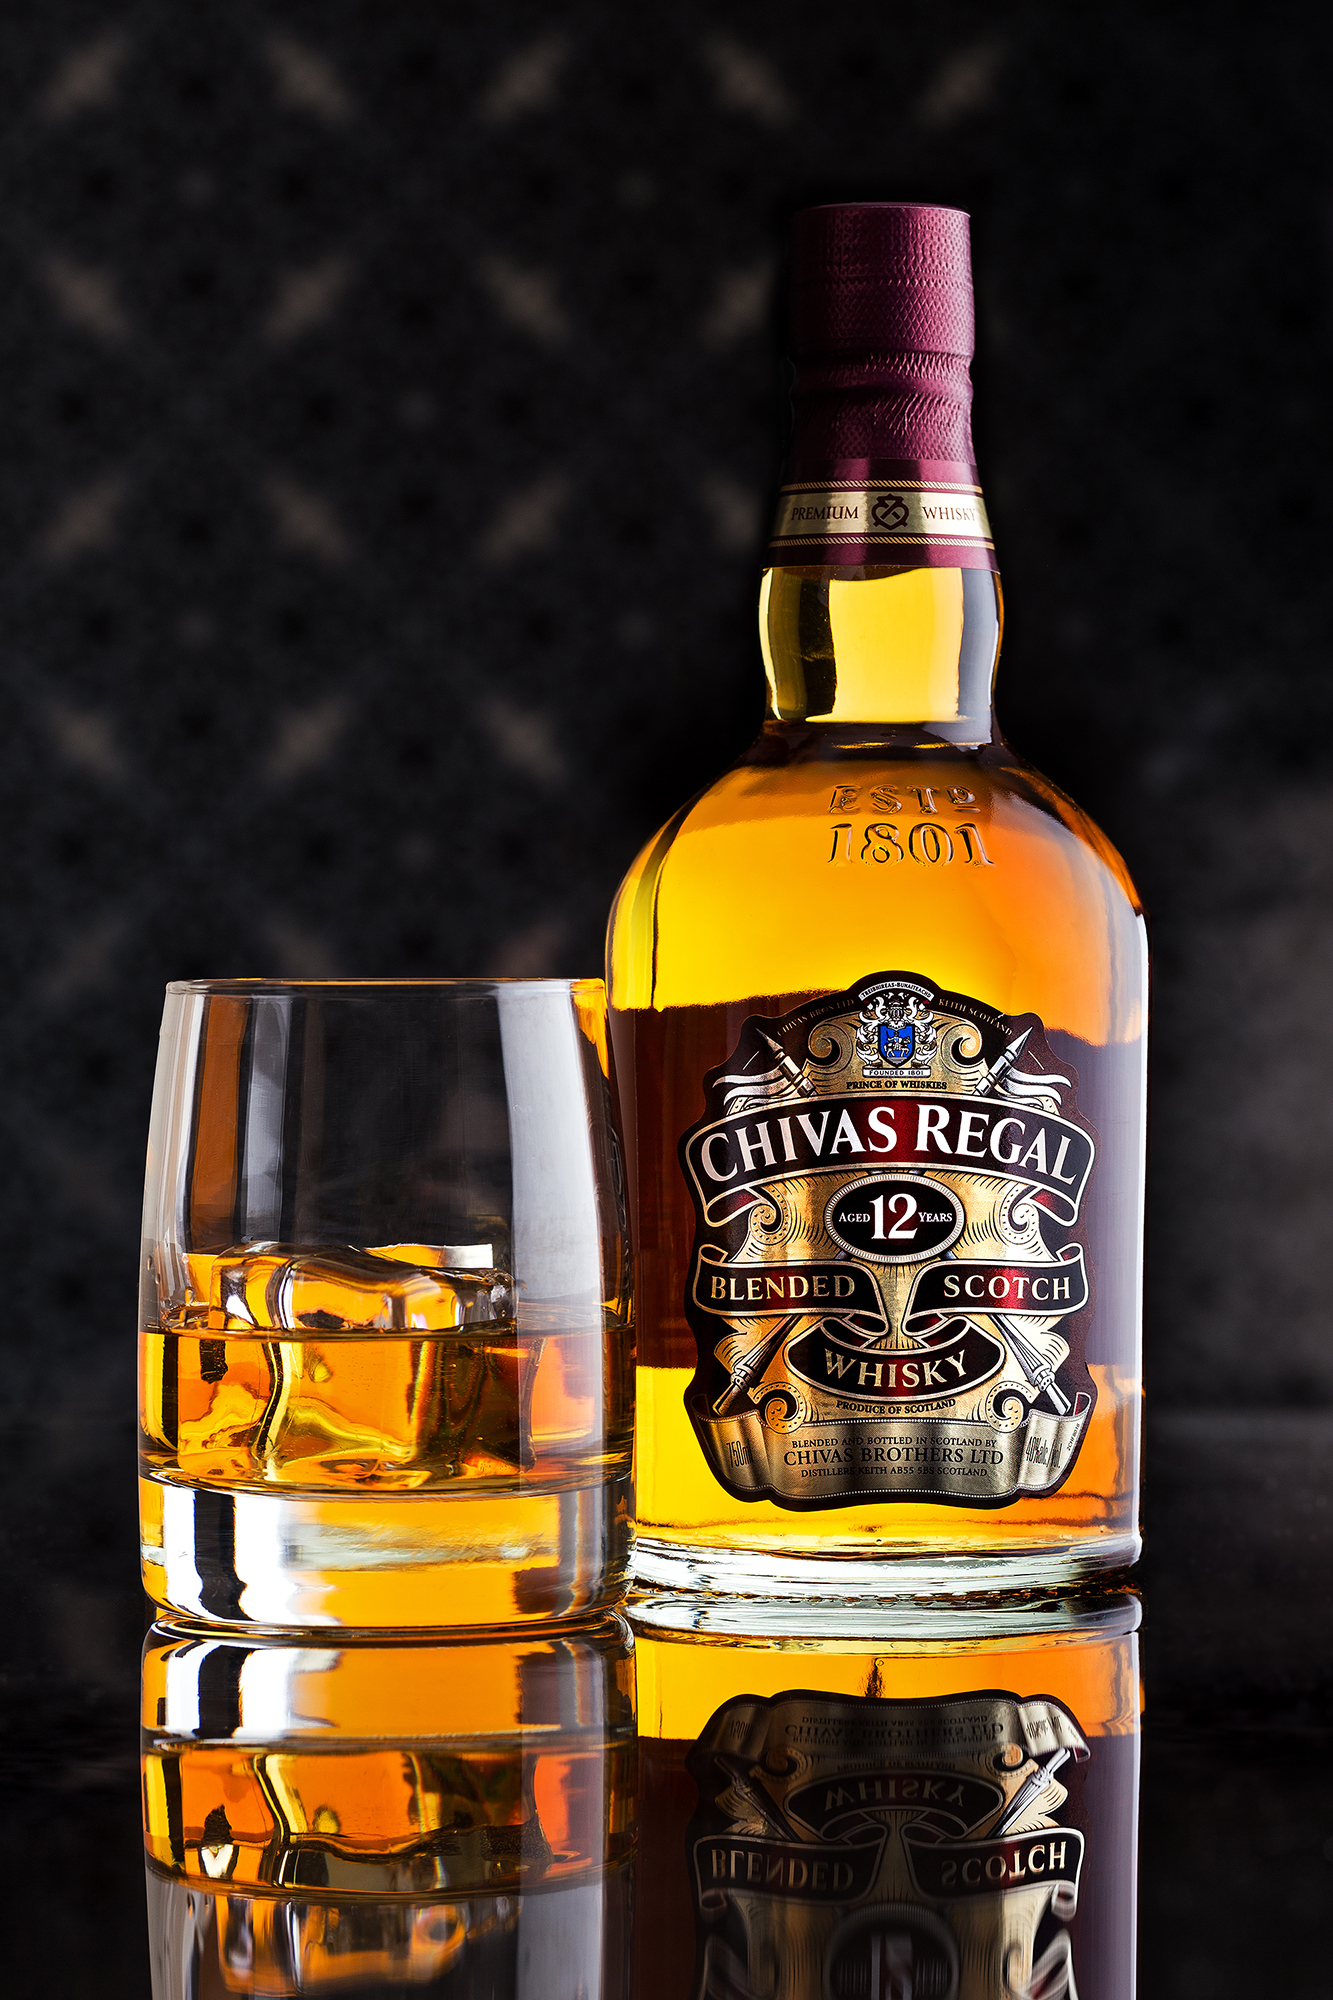 Chivas Regal.jpg